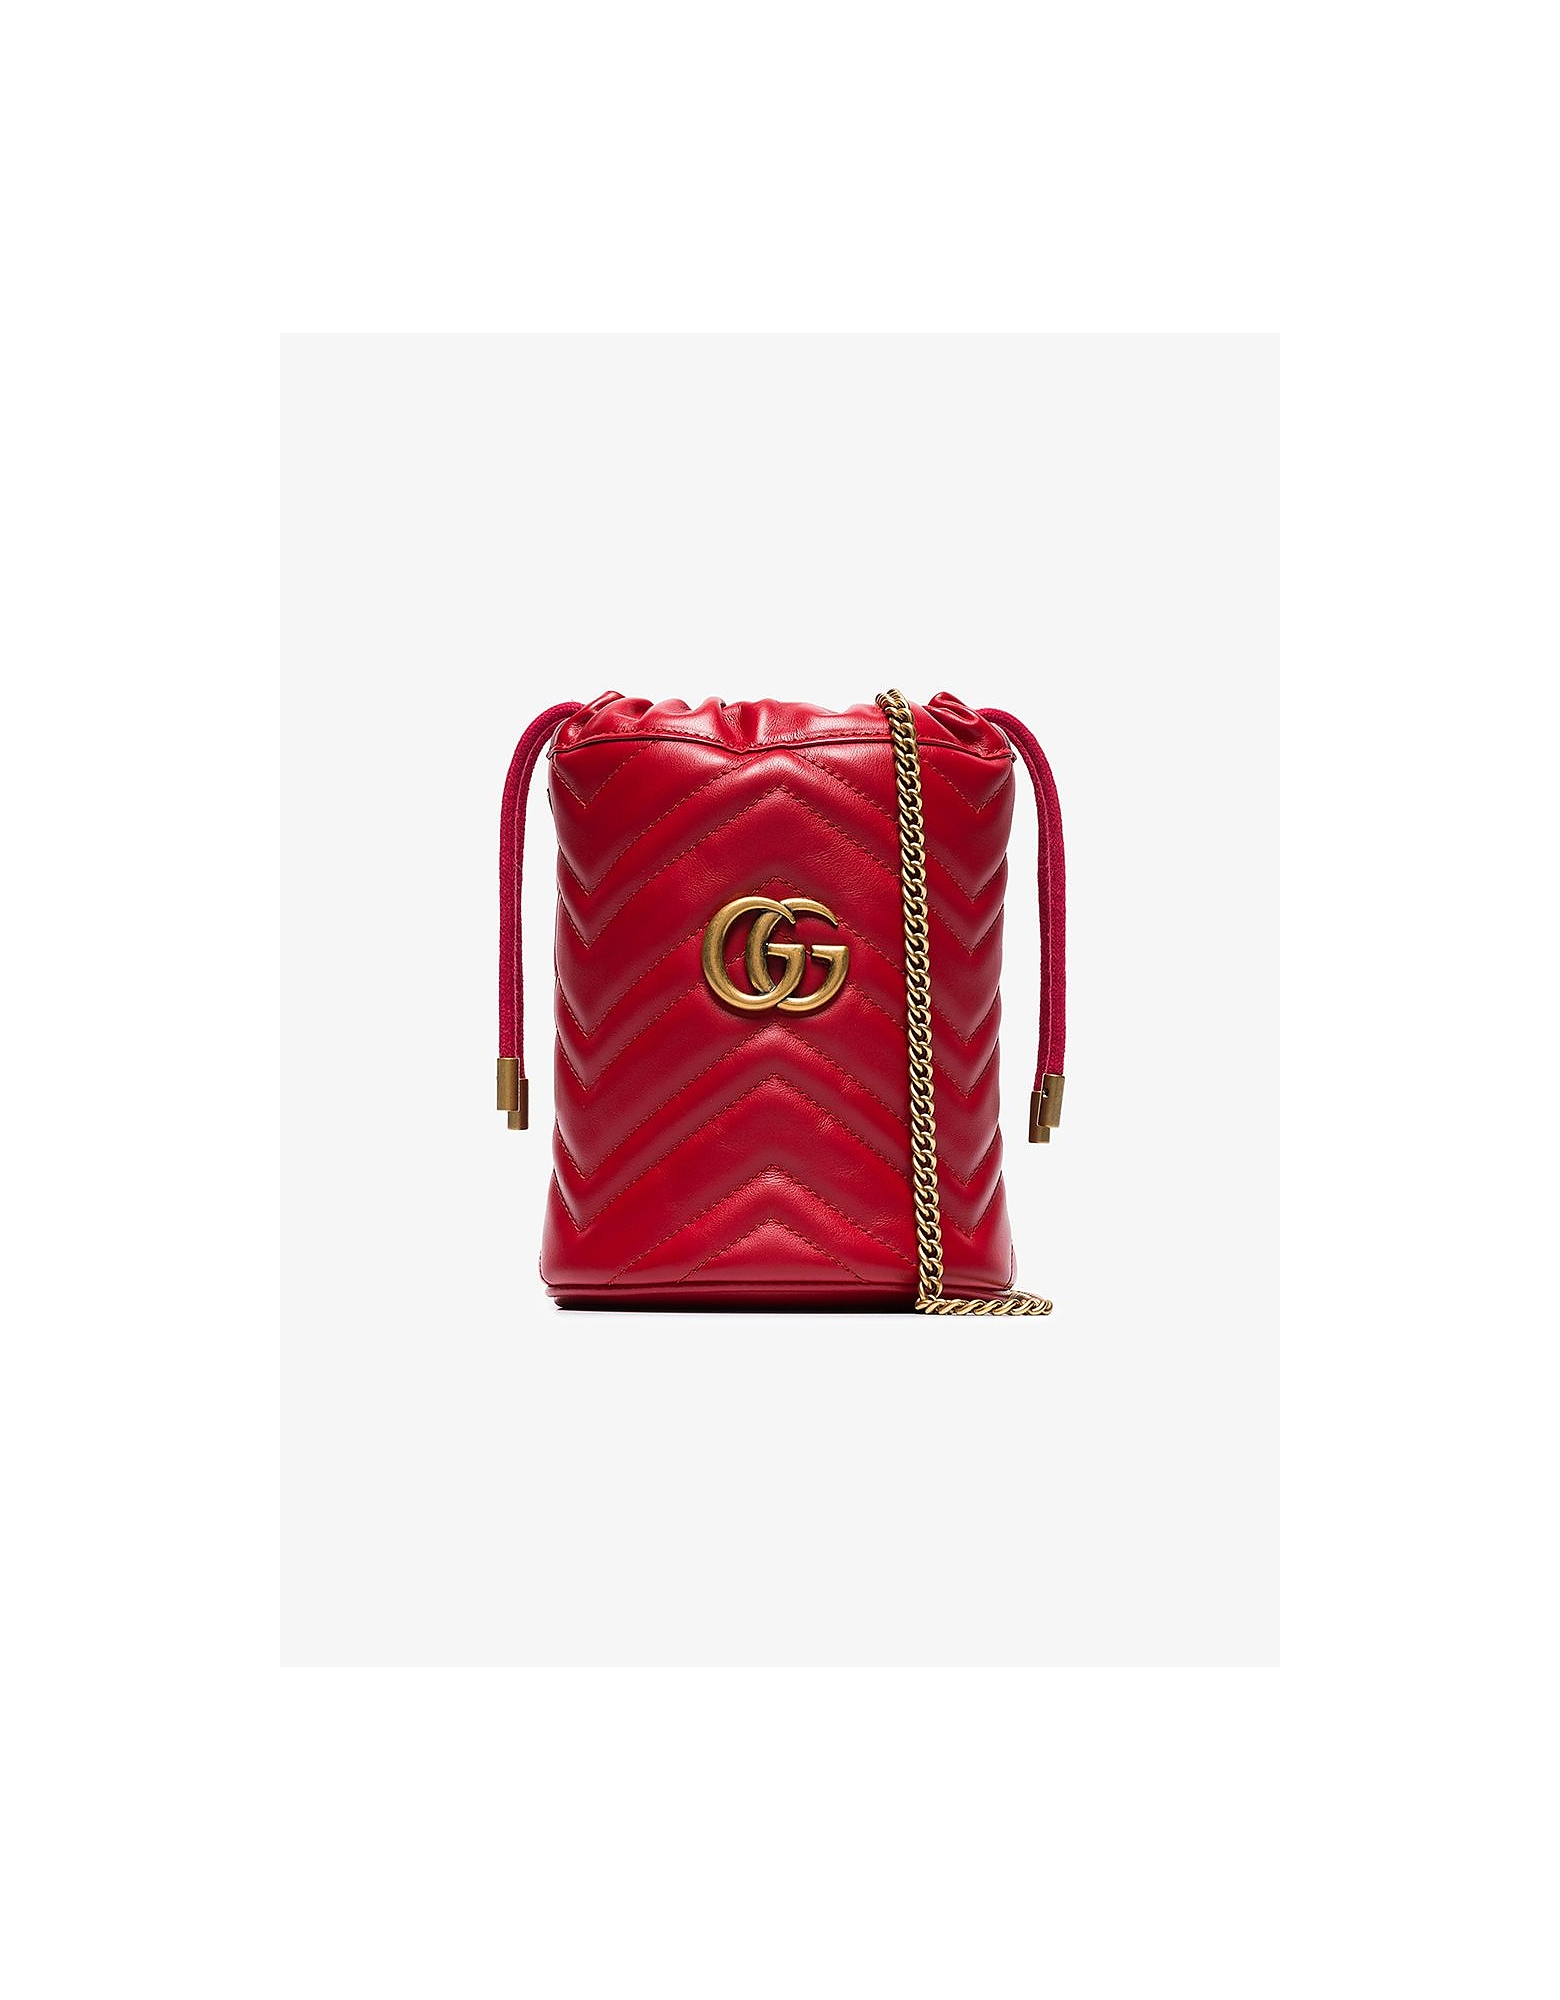 Gucci Designer Handbags, GG Marmont mini bucket bag